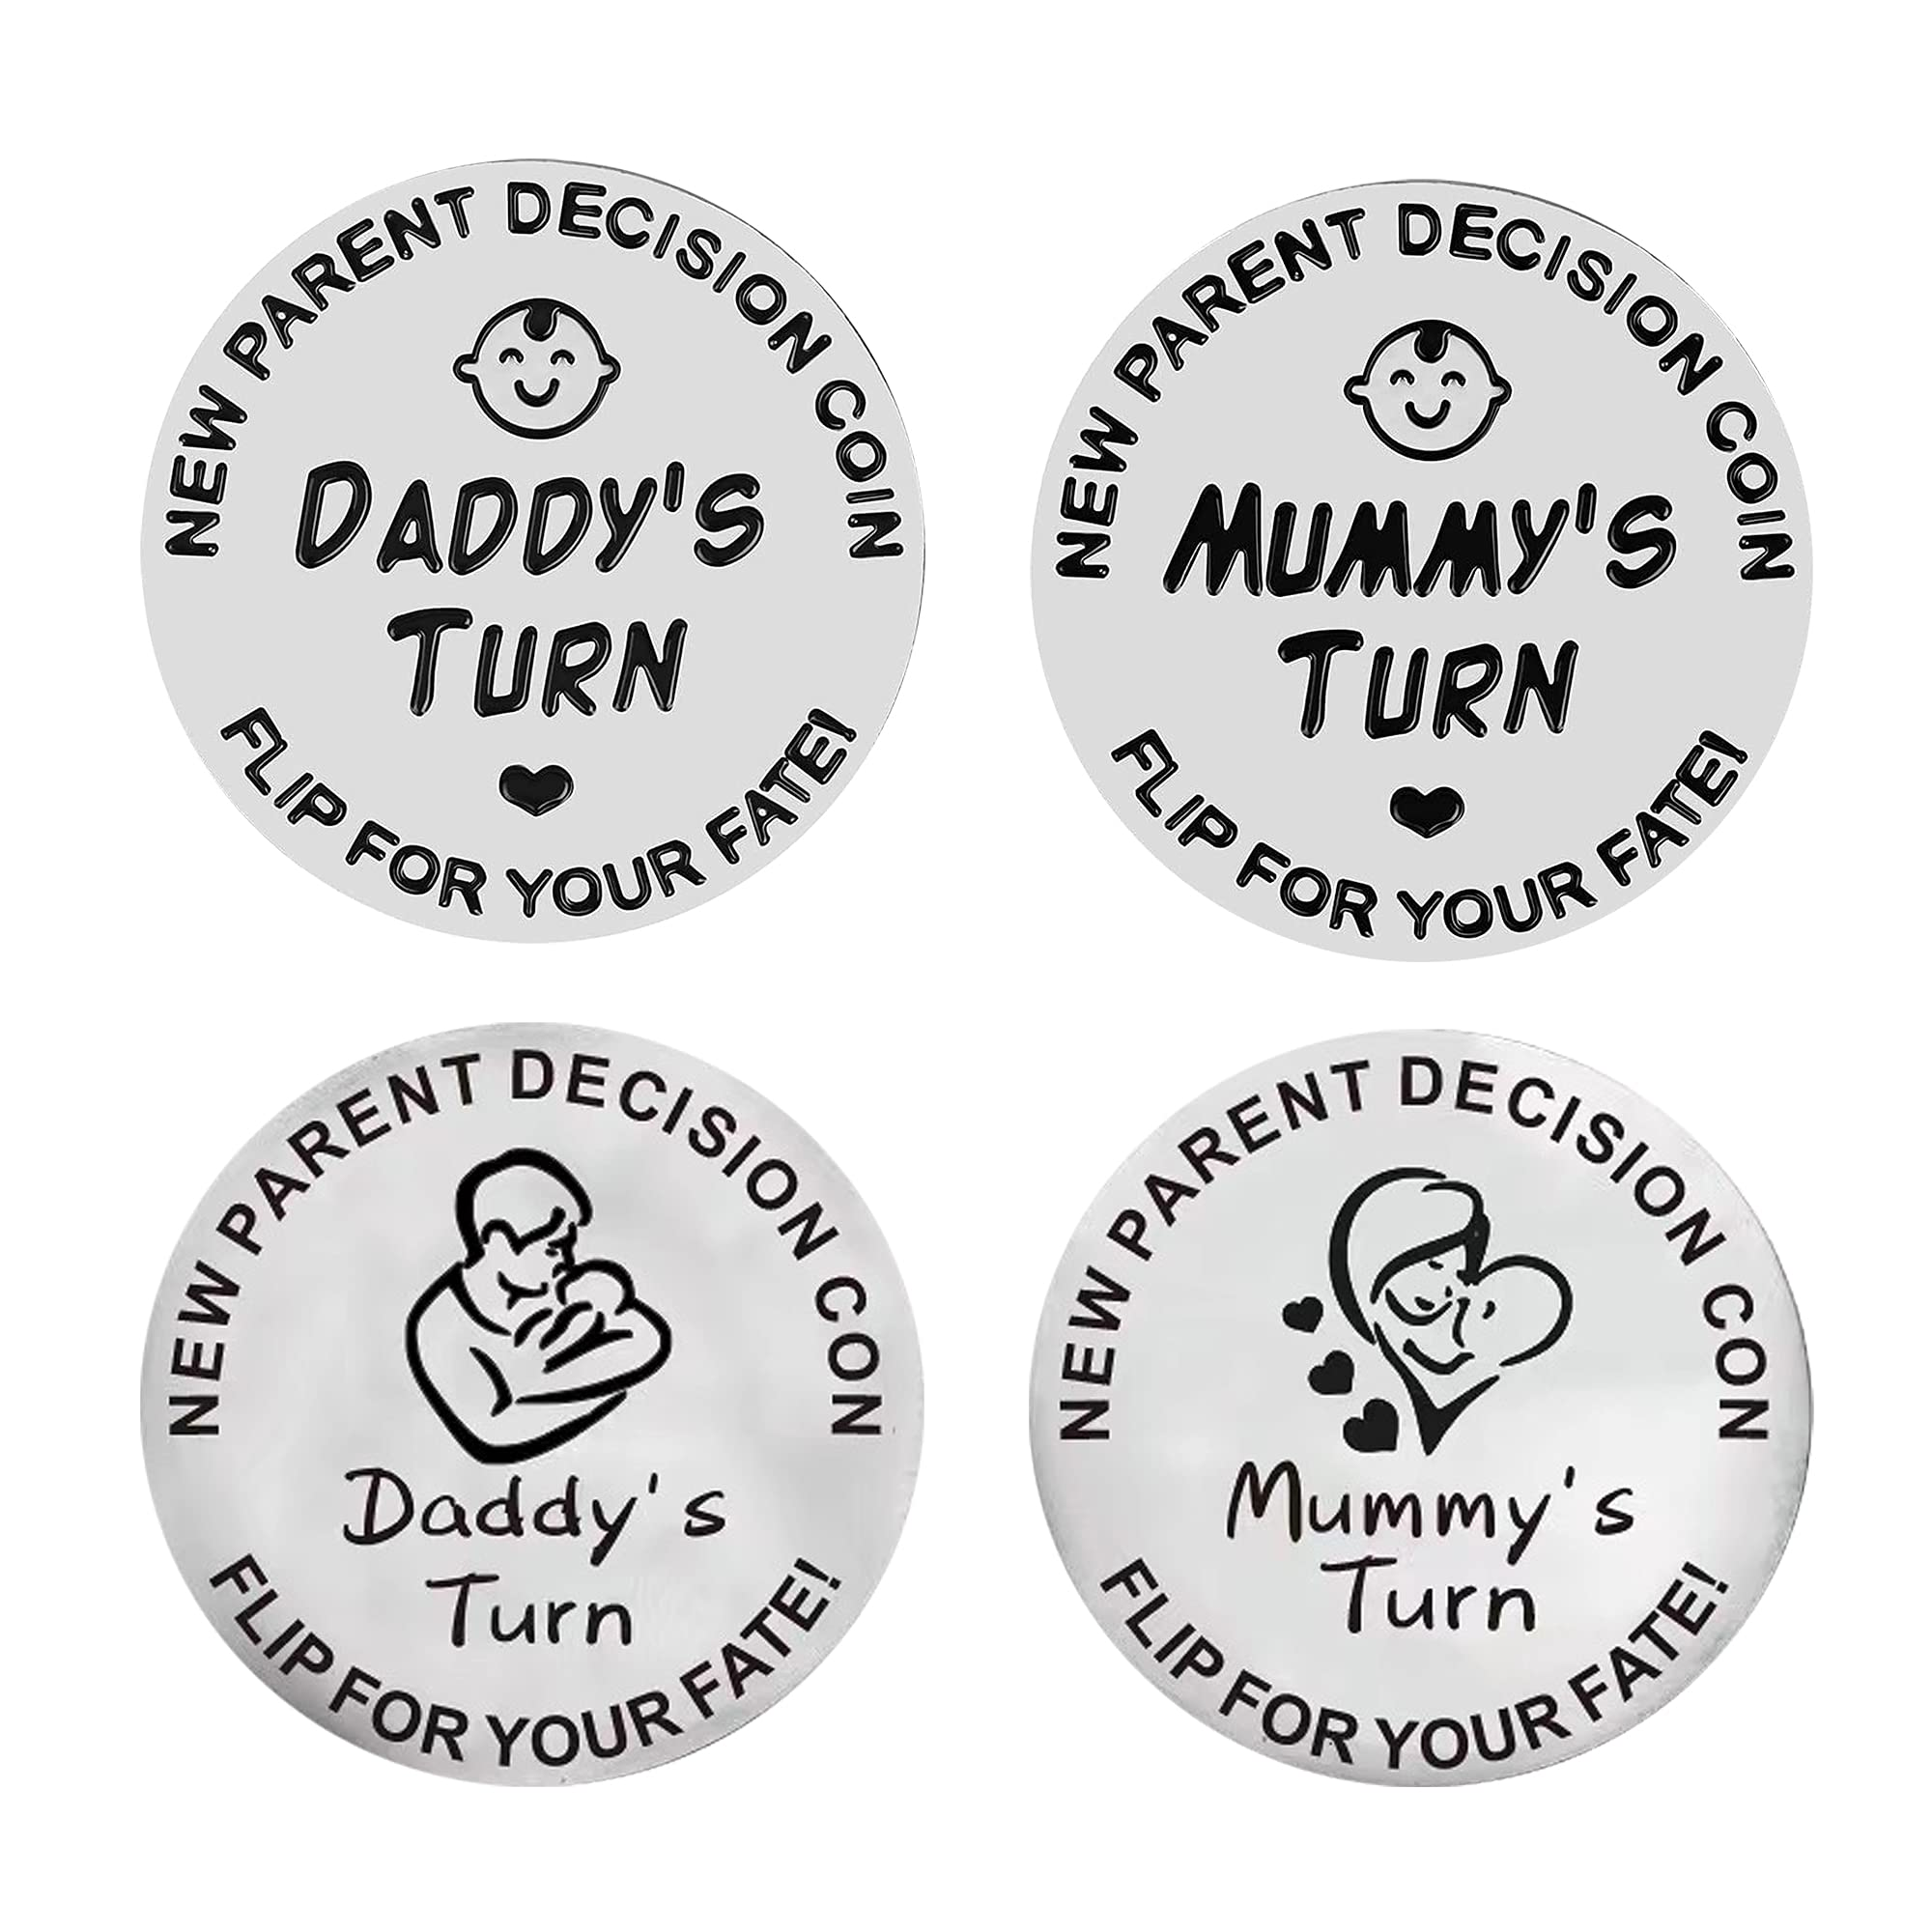 2PCS Different Look Double Sided New Baby Best Decision Coin Gift for